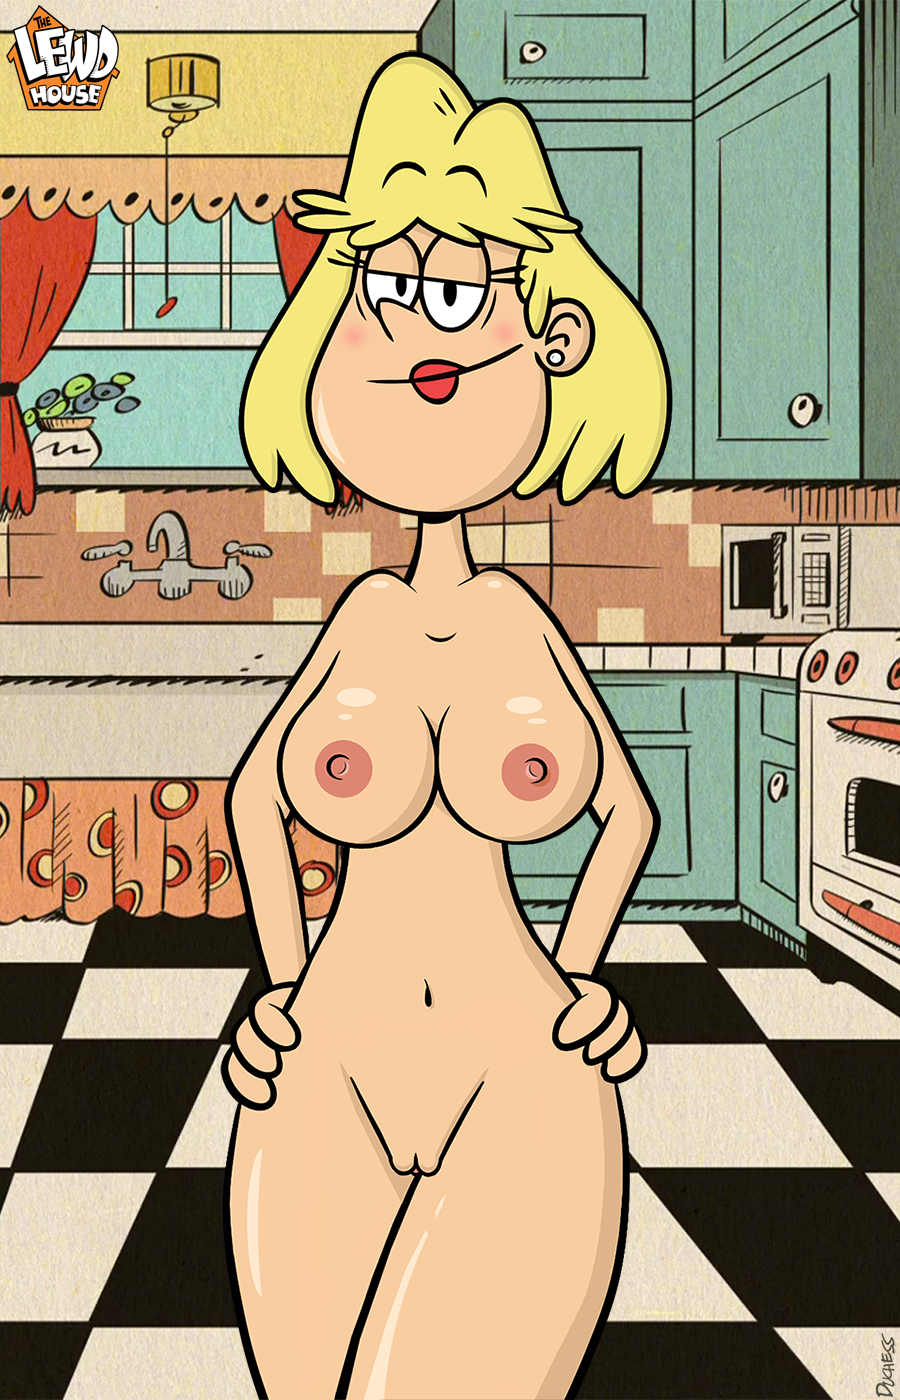 rule the loud house 63 Five nights in anime sex